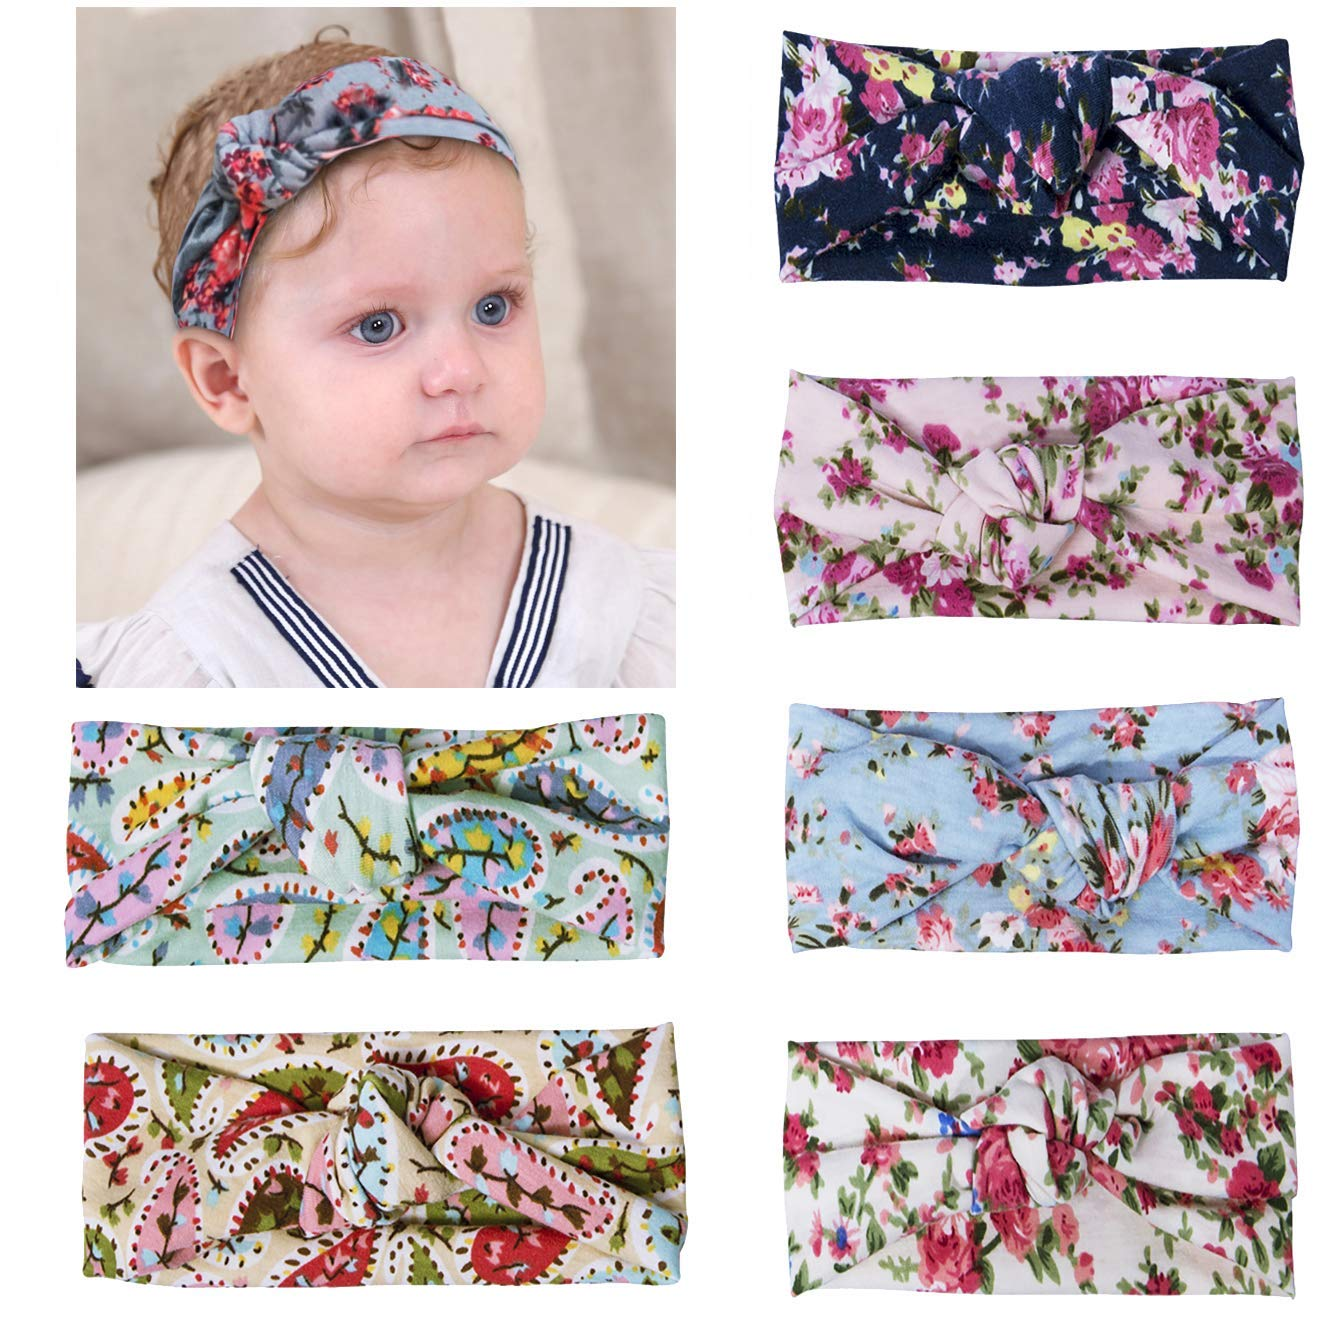 6ae28858784 Get Quotations · Fasker 6 Pack Baby Girl Headband Turban Knotted Headwraps  for Newborn   Toddlers